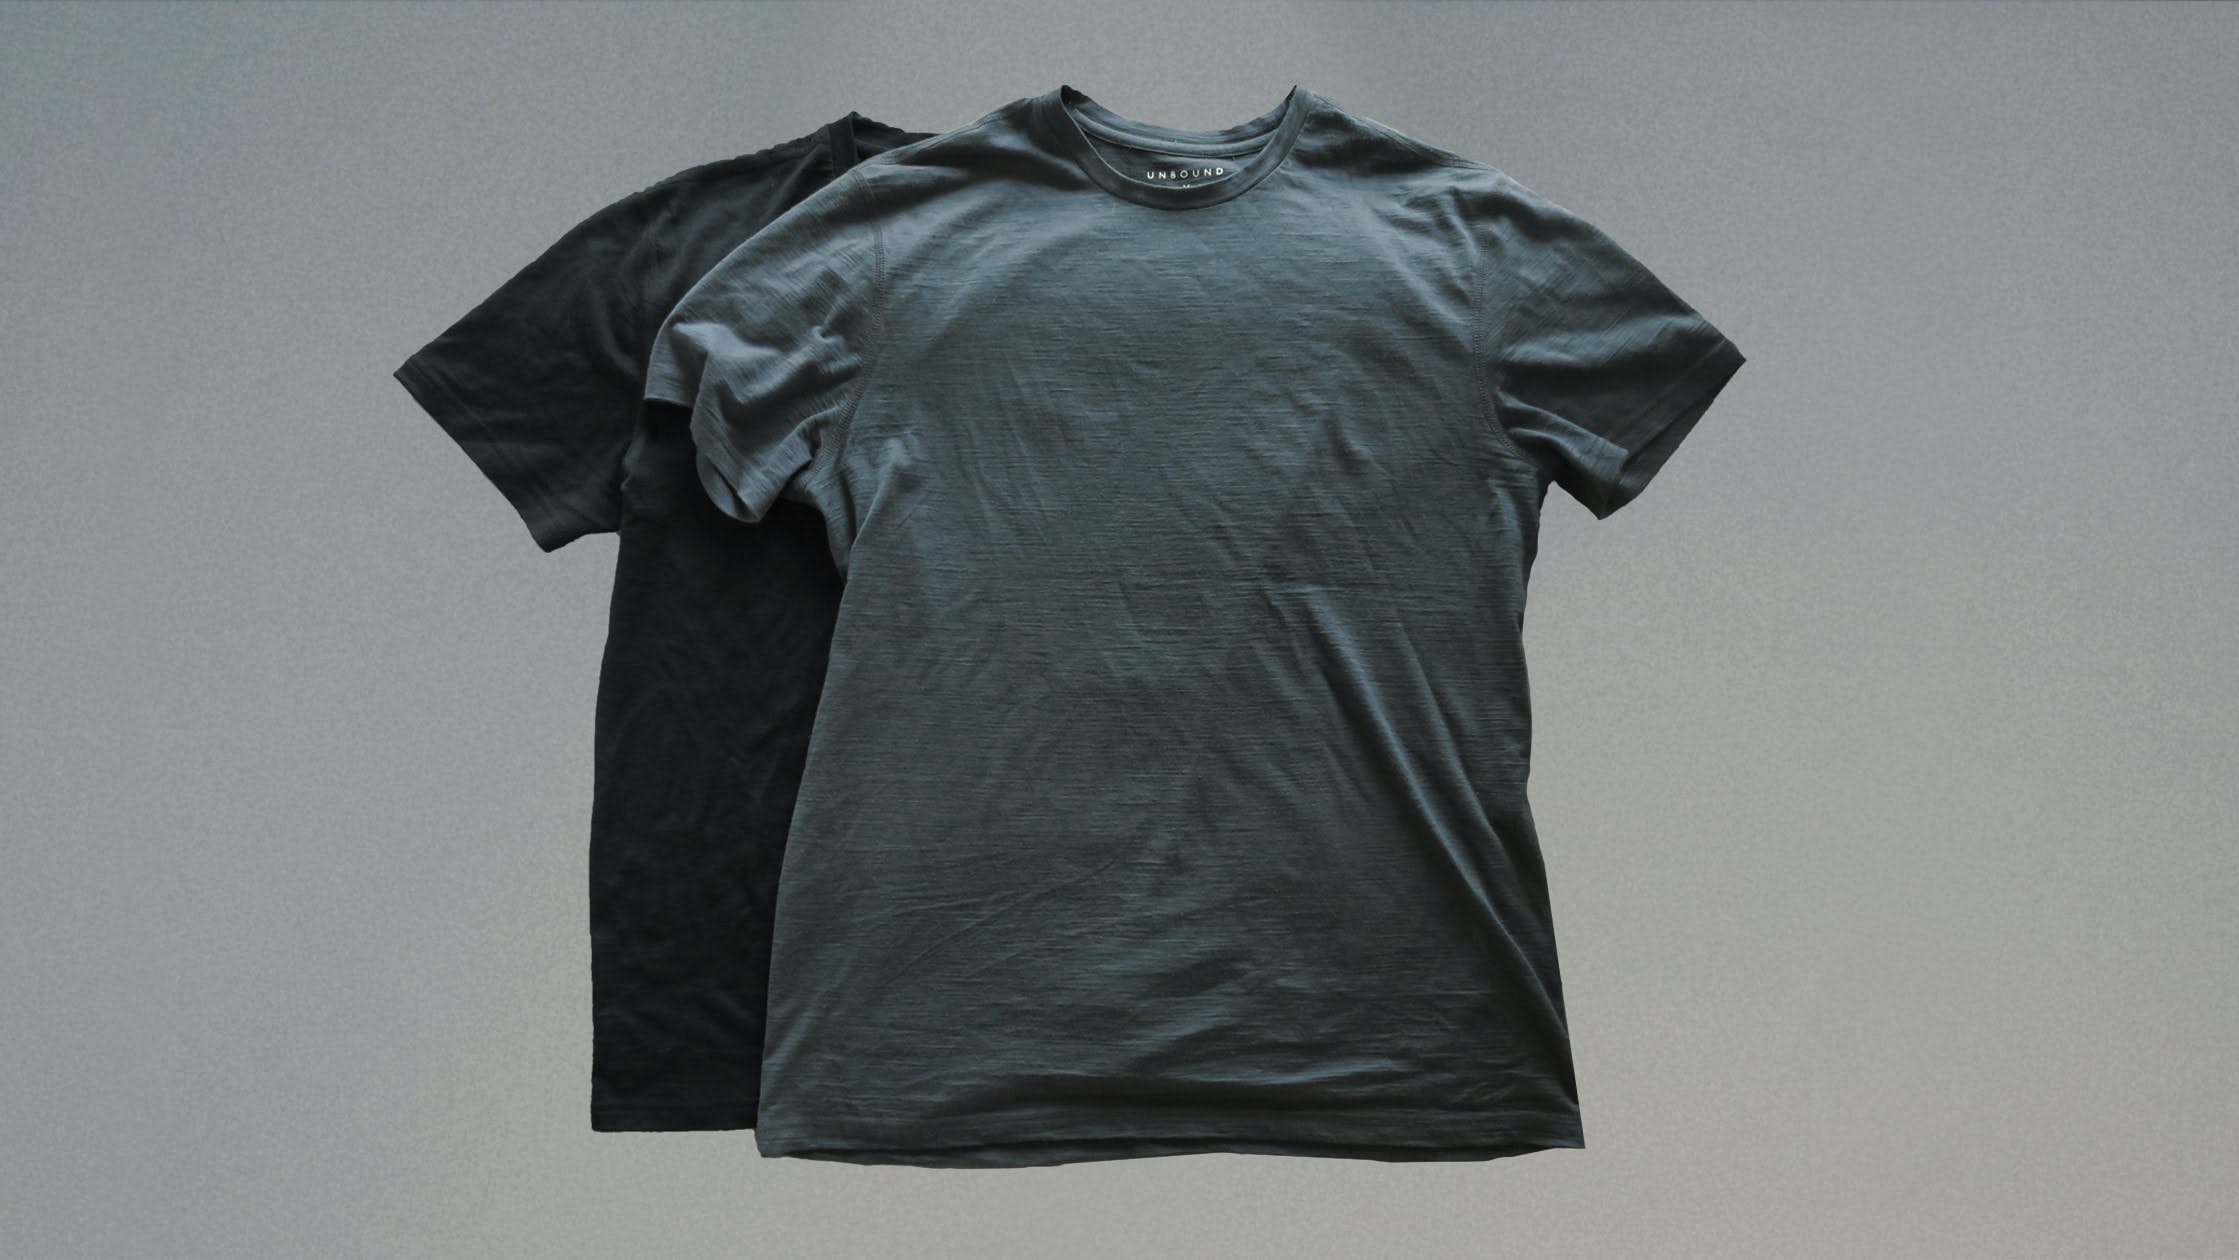 Unbound merino crew neck t shirt review pack hacker for Merino wool shirts for travel